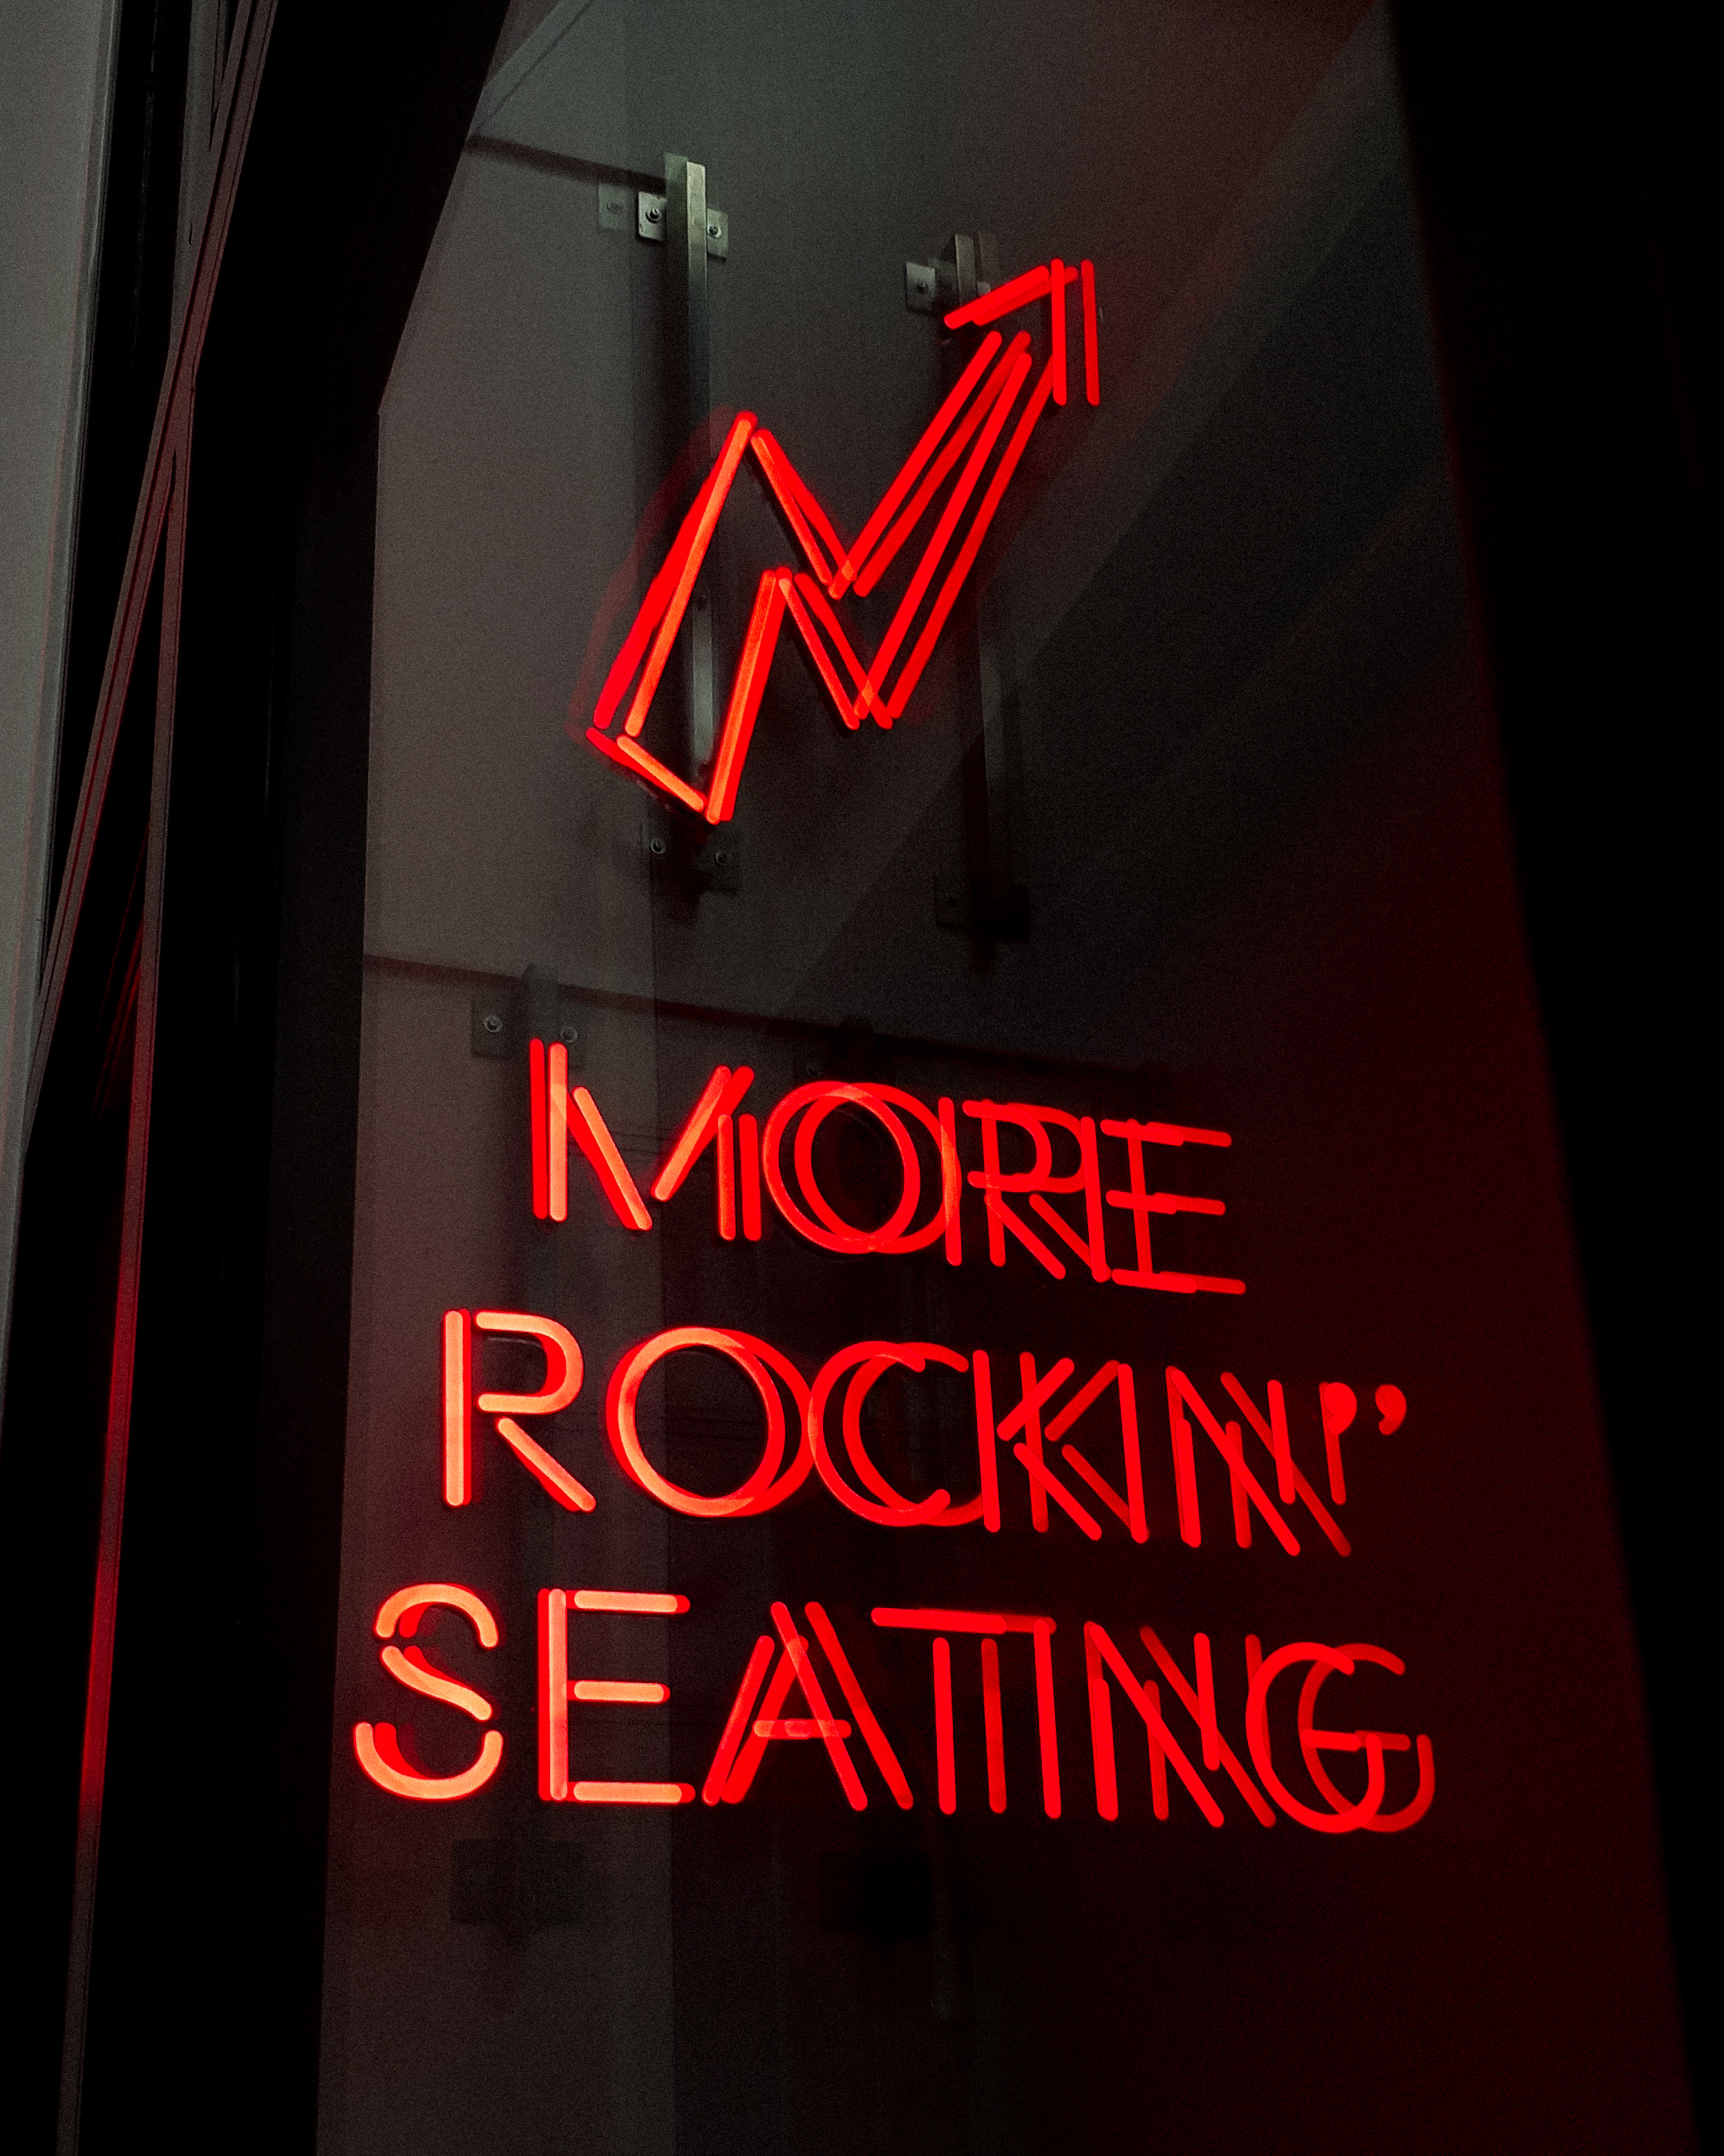 More Rockin' Seating Neon Signage Turned-on